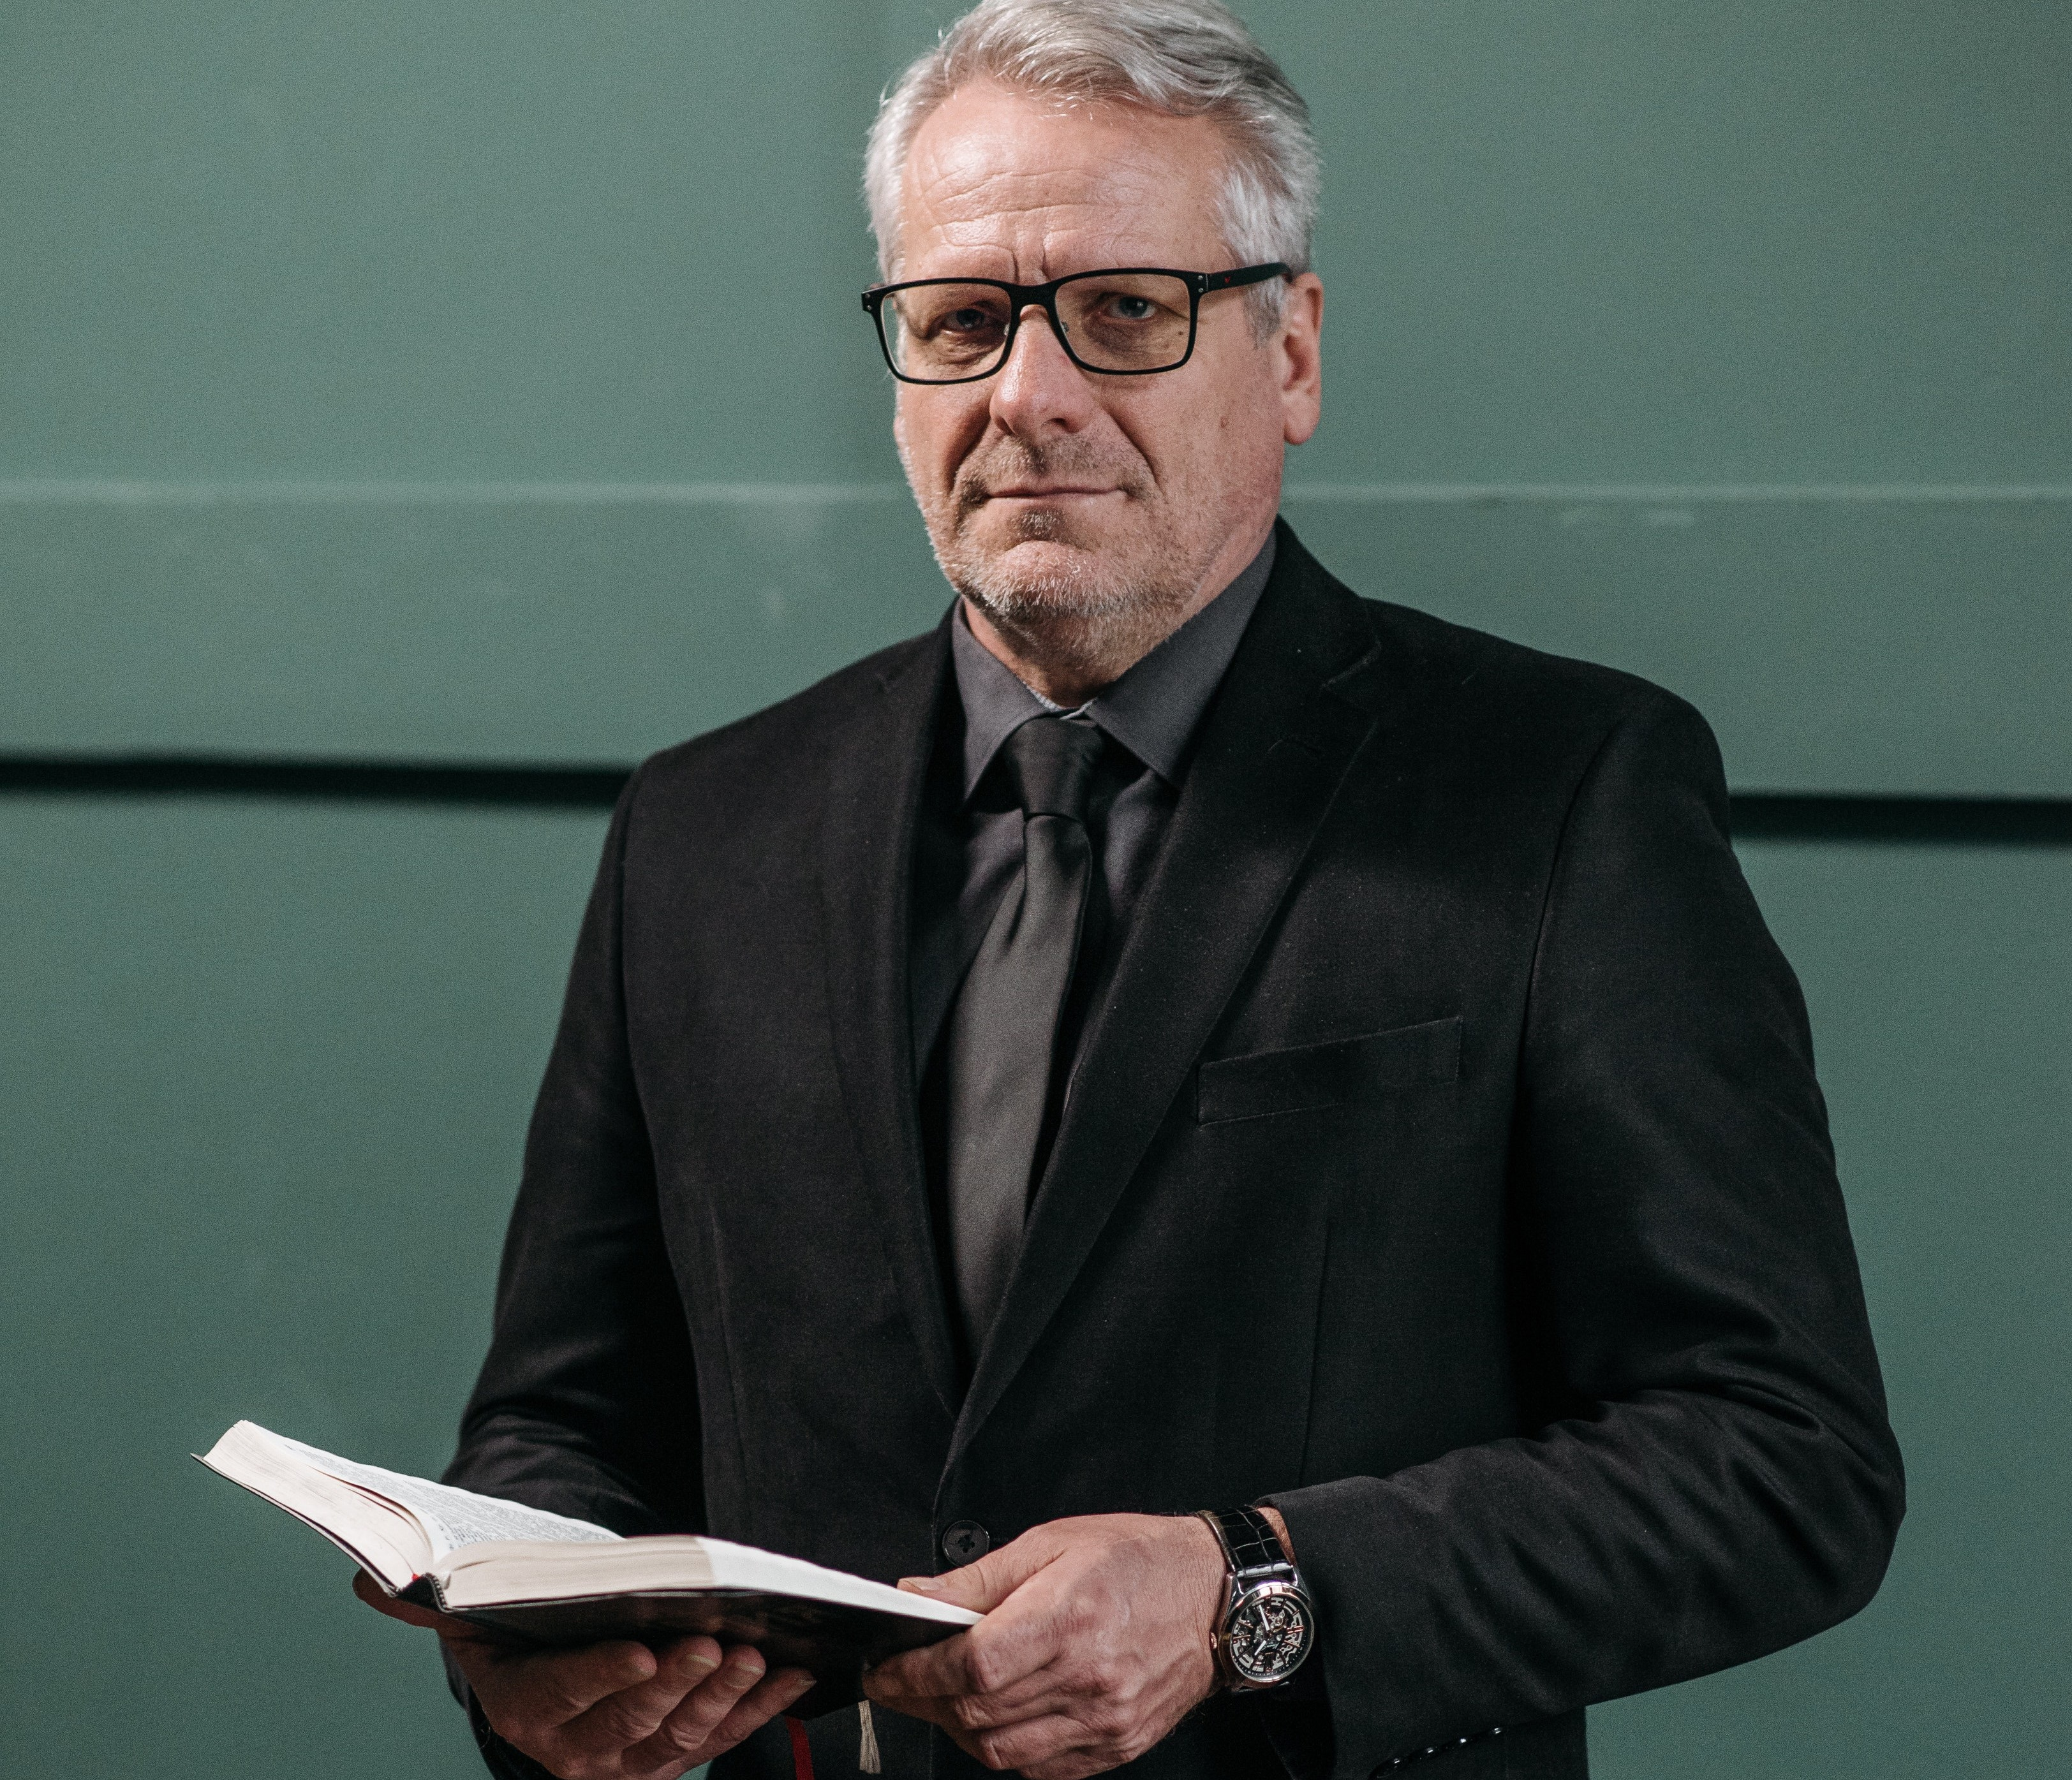 Professorial man with white hair holding an open book